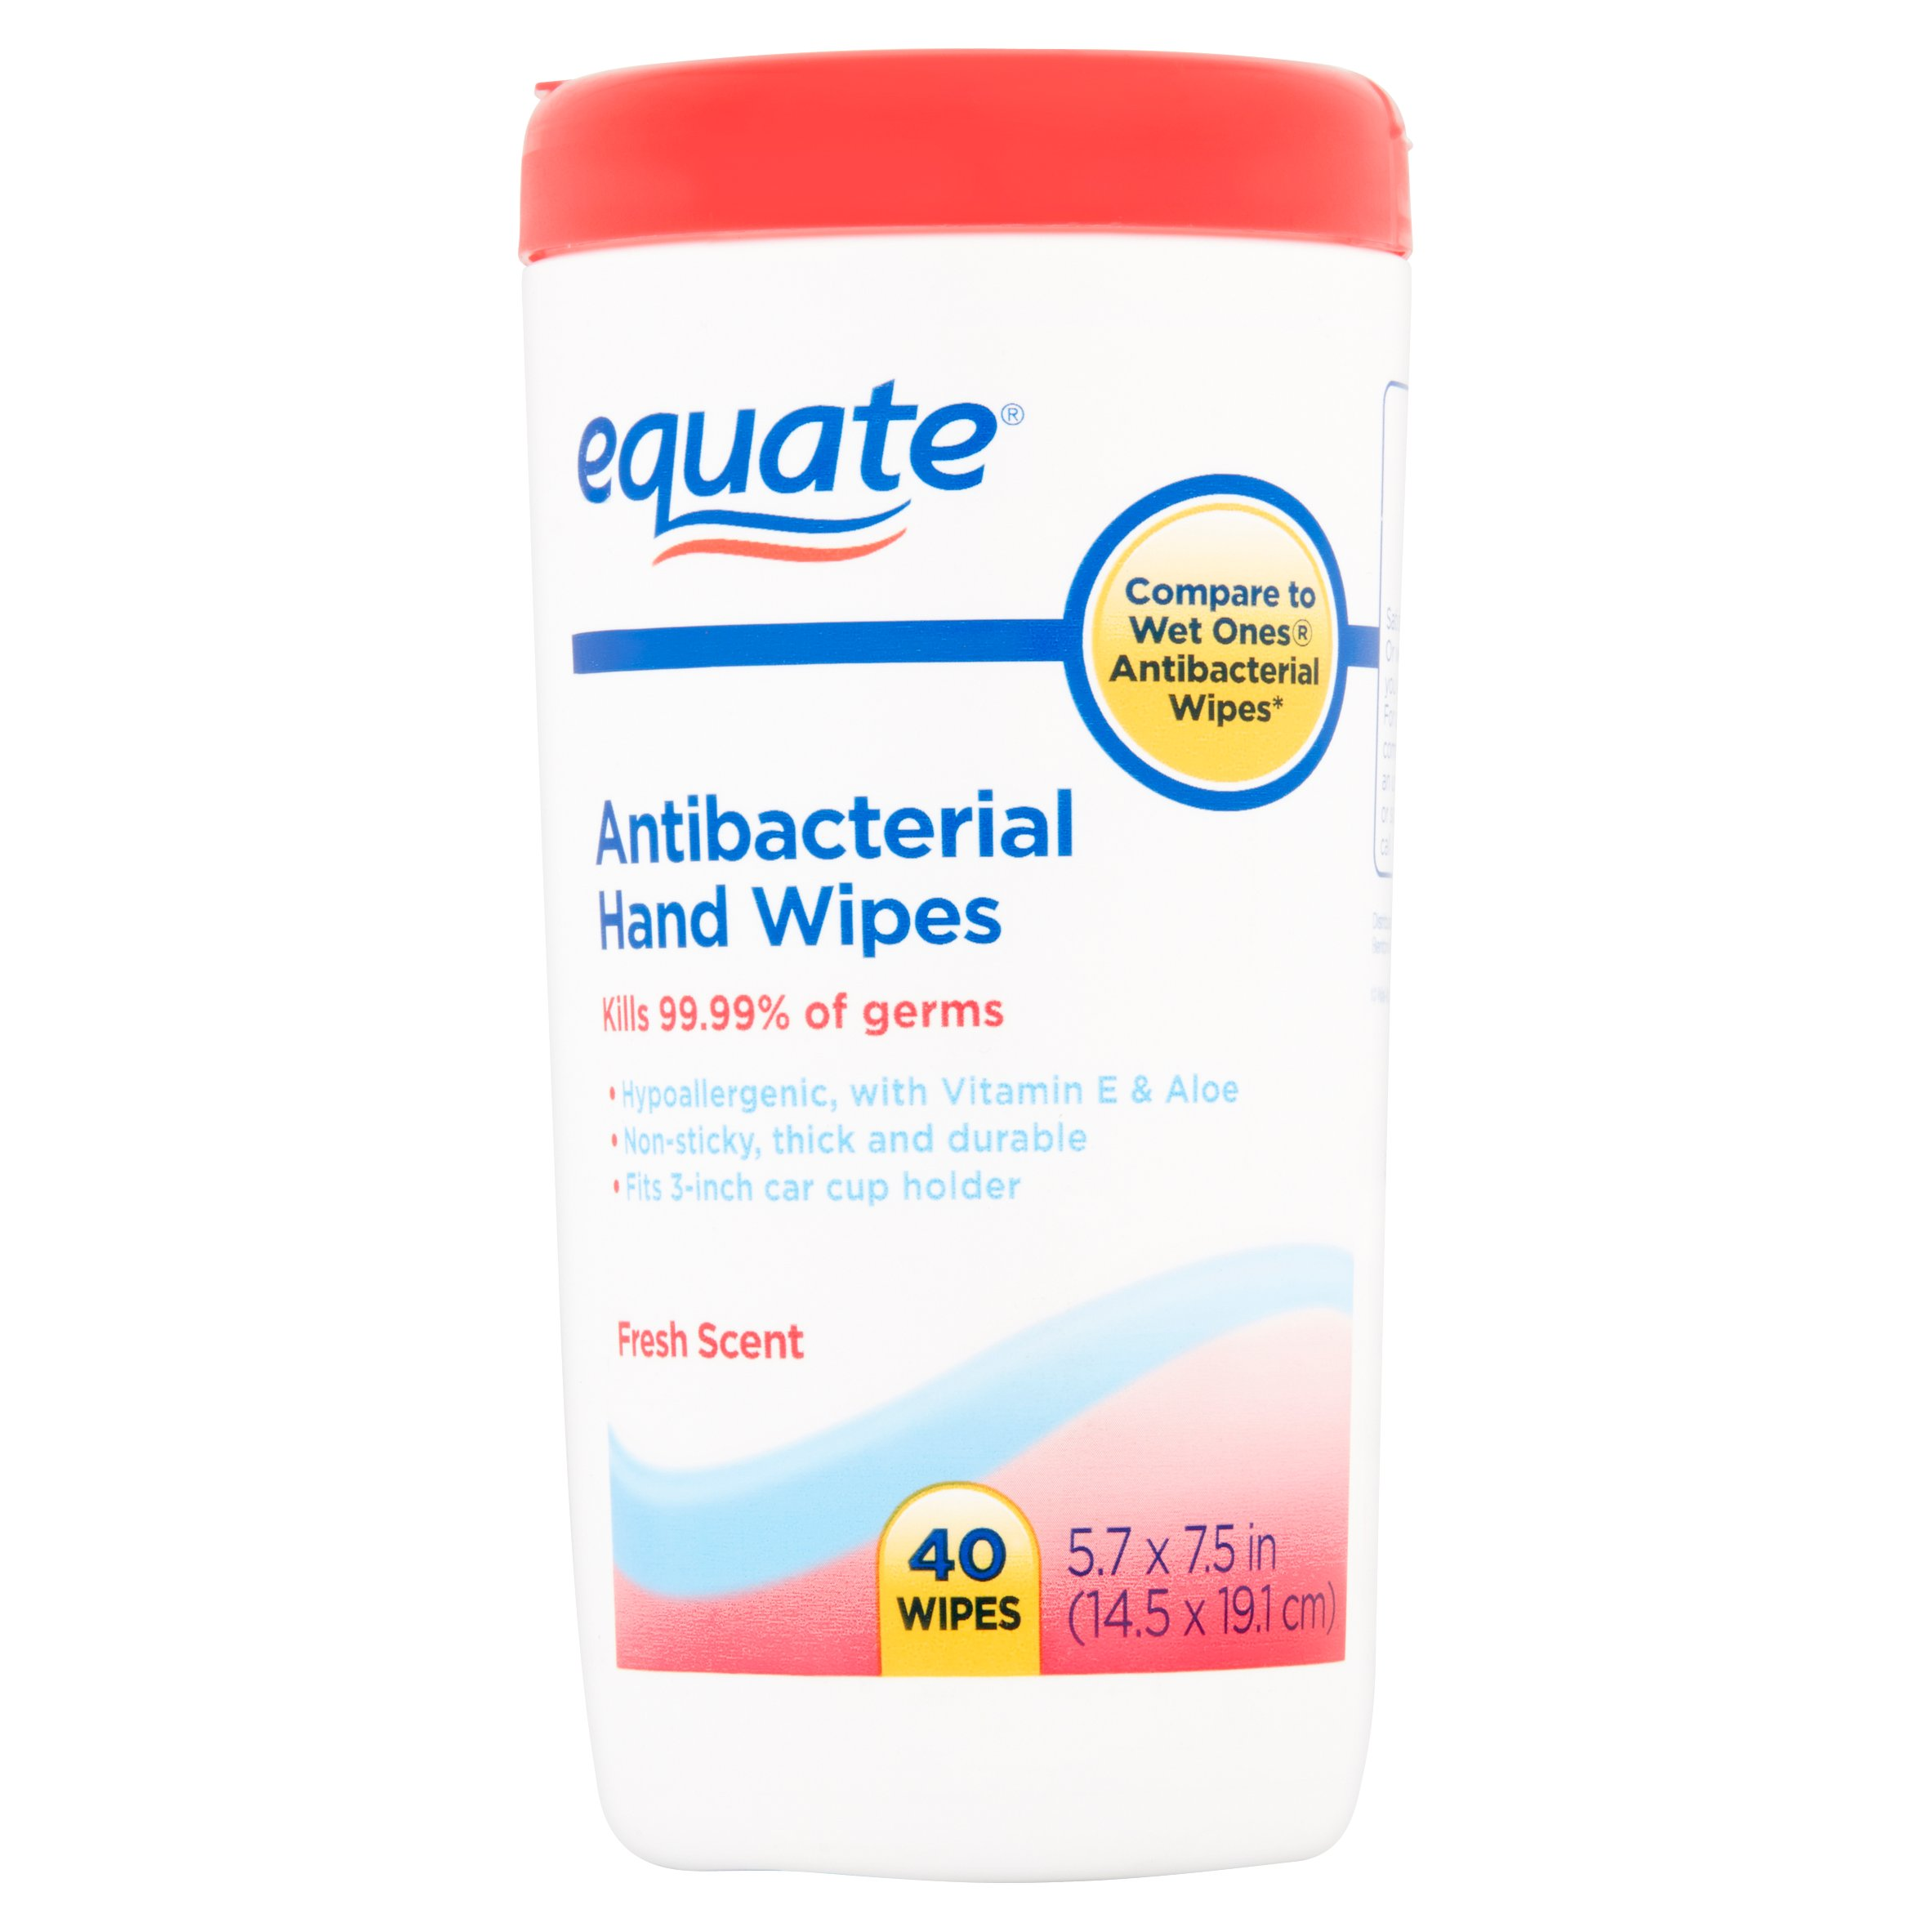 Equate Fresh Scent Antibacterial Hand Wipes, 40 Ct